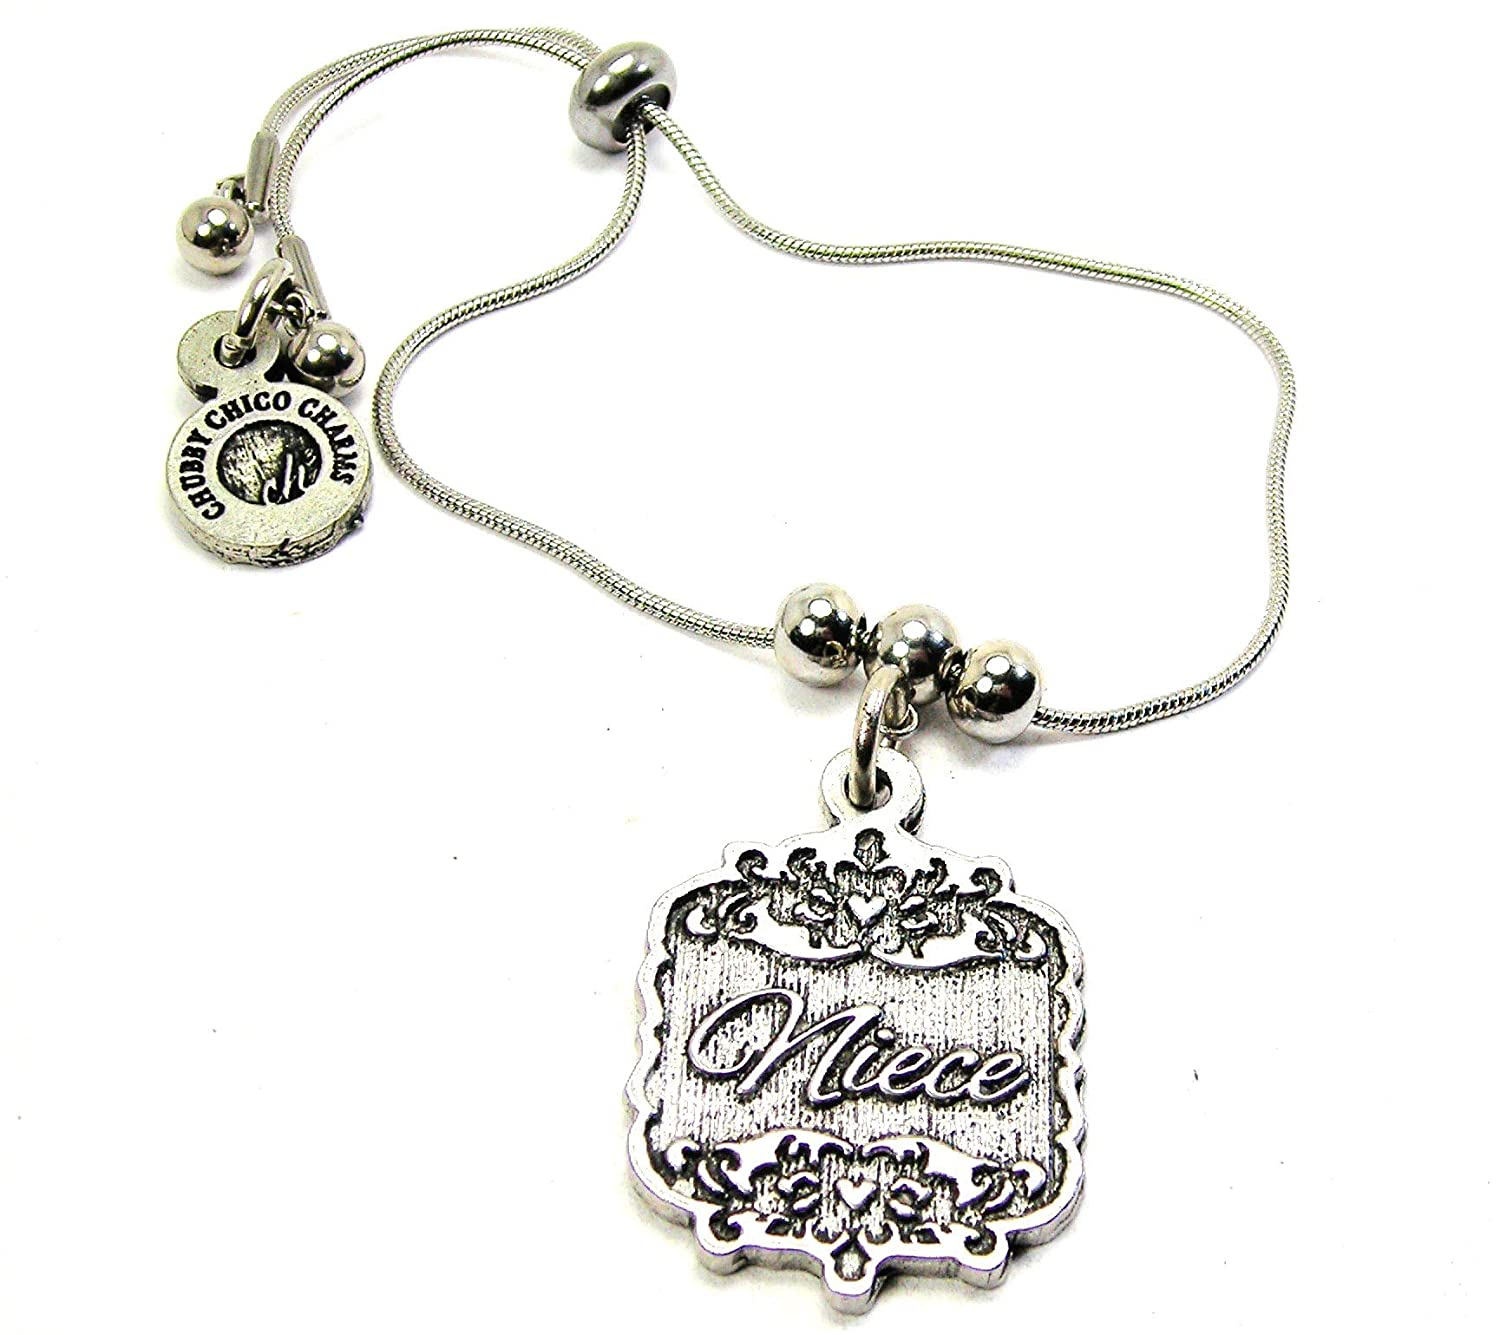 Chubby Chico Charms Niece Victorian Scroll Slide Chain Bracelet in